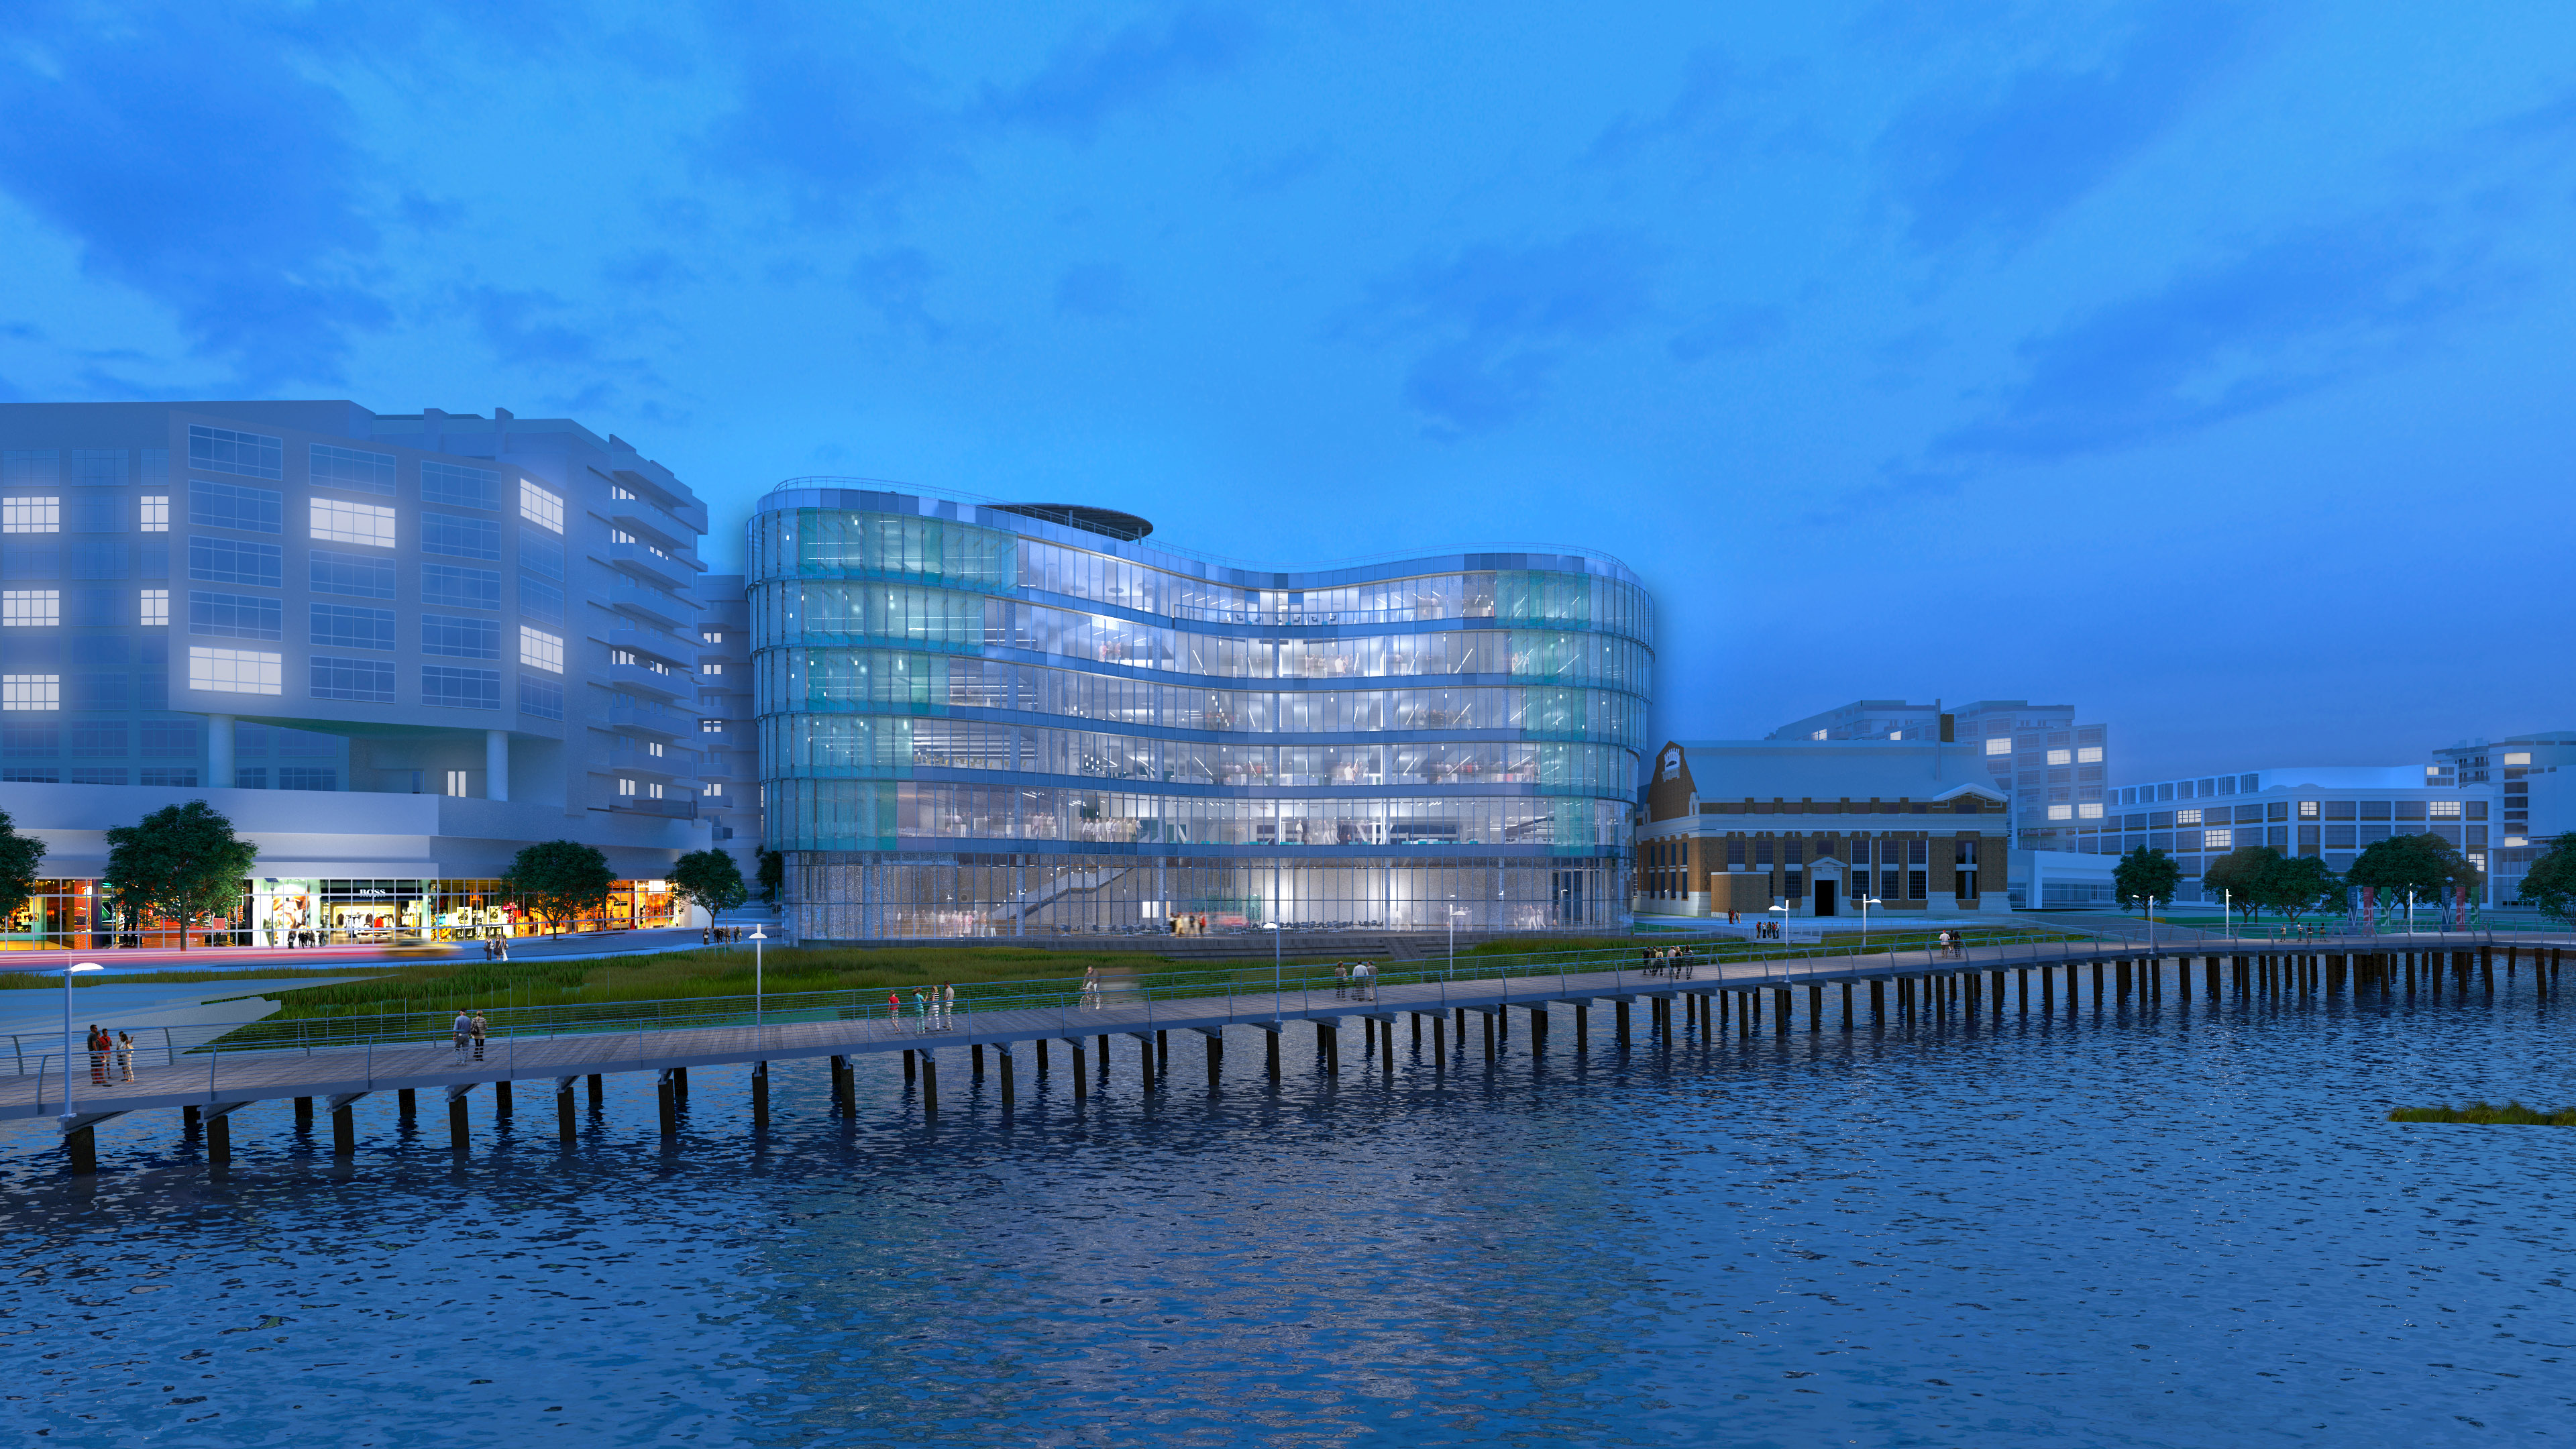 Skanska signs with District of Columbia Water and Sewer Authority to build their new administrative headquarters building in Washington, D.C.